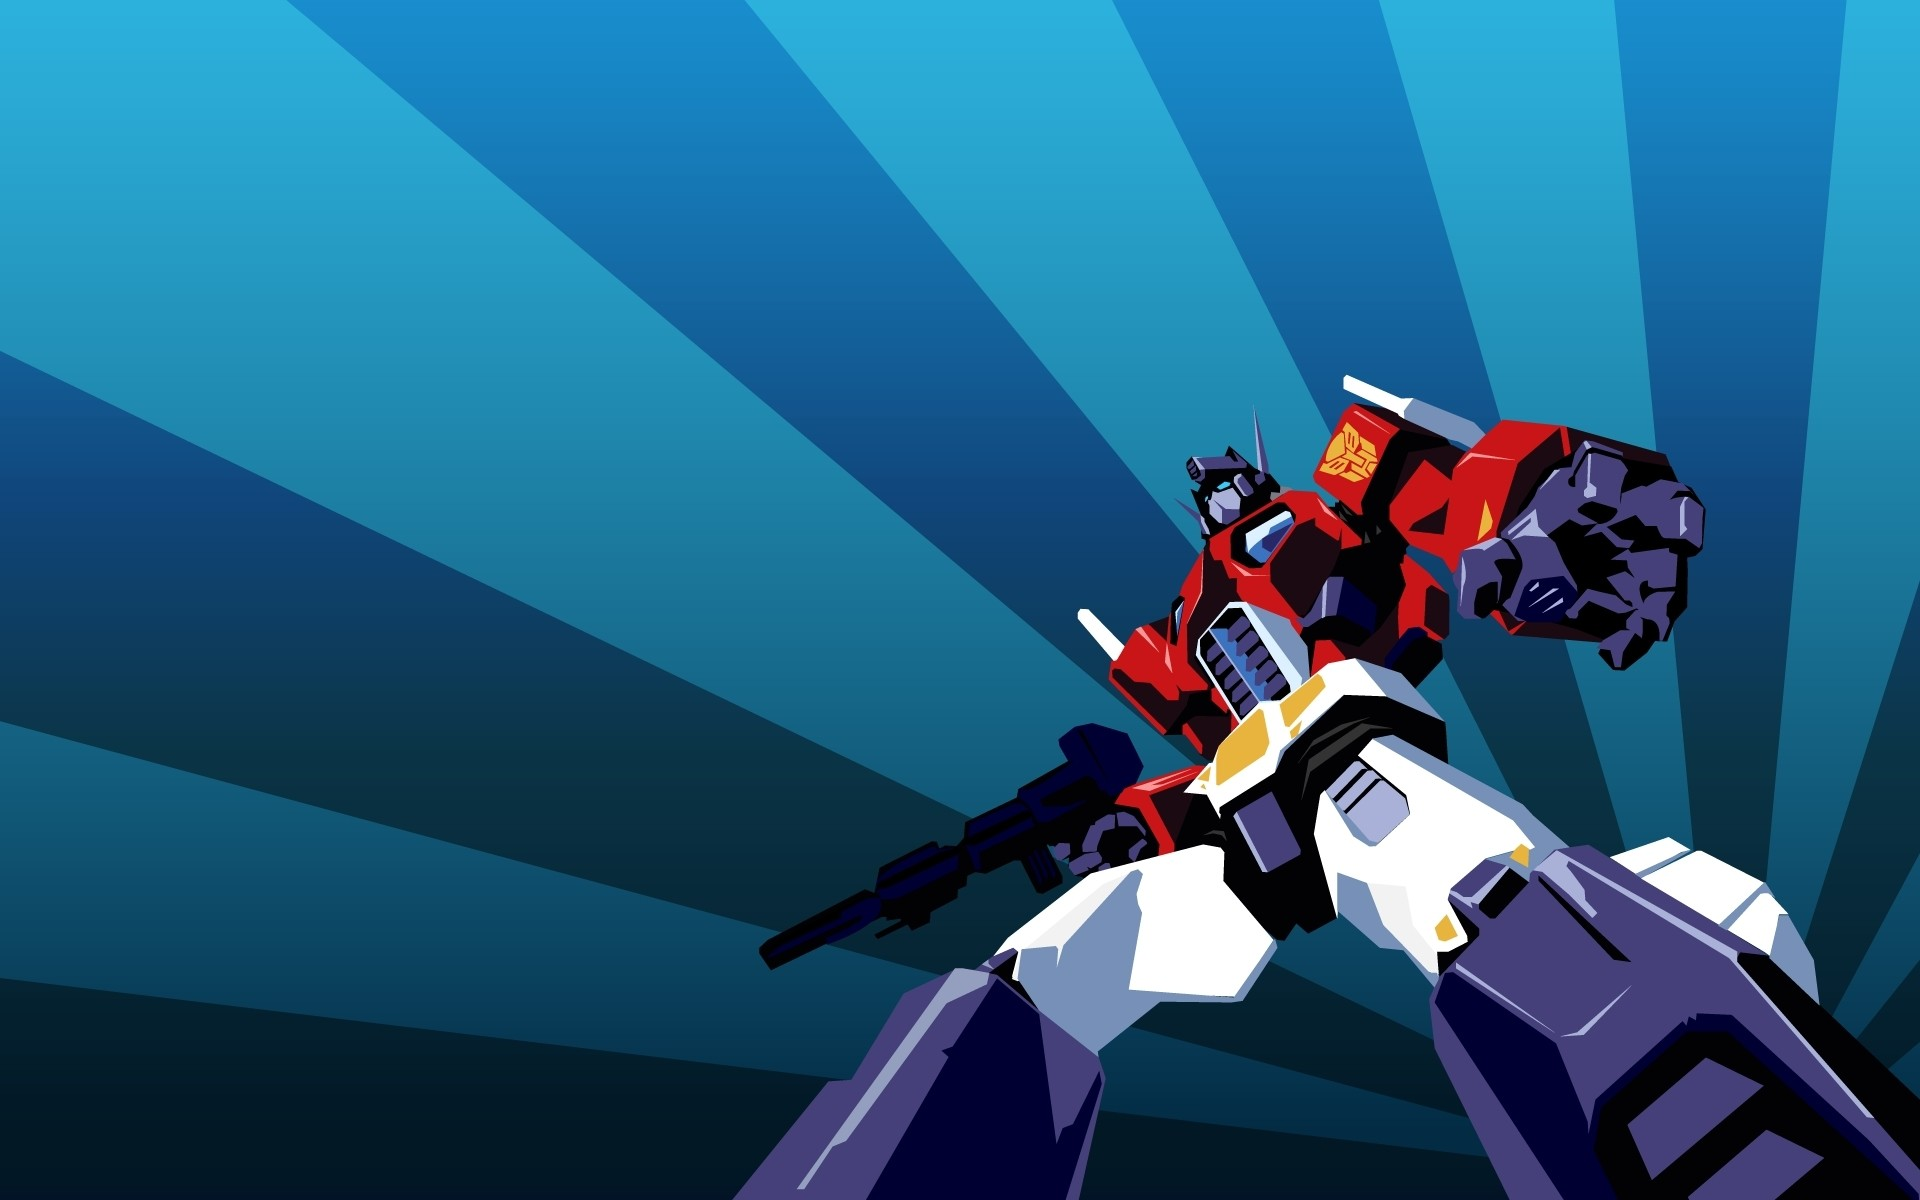 chicken pop pod images Optimus Prime HD wallpaper and background photos